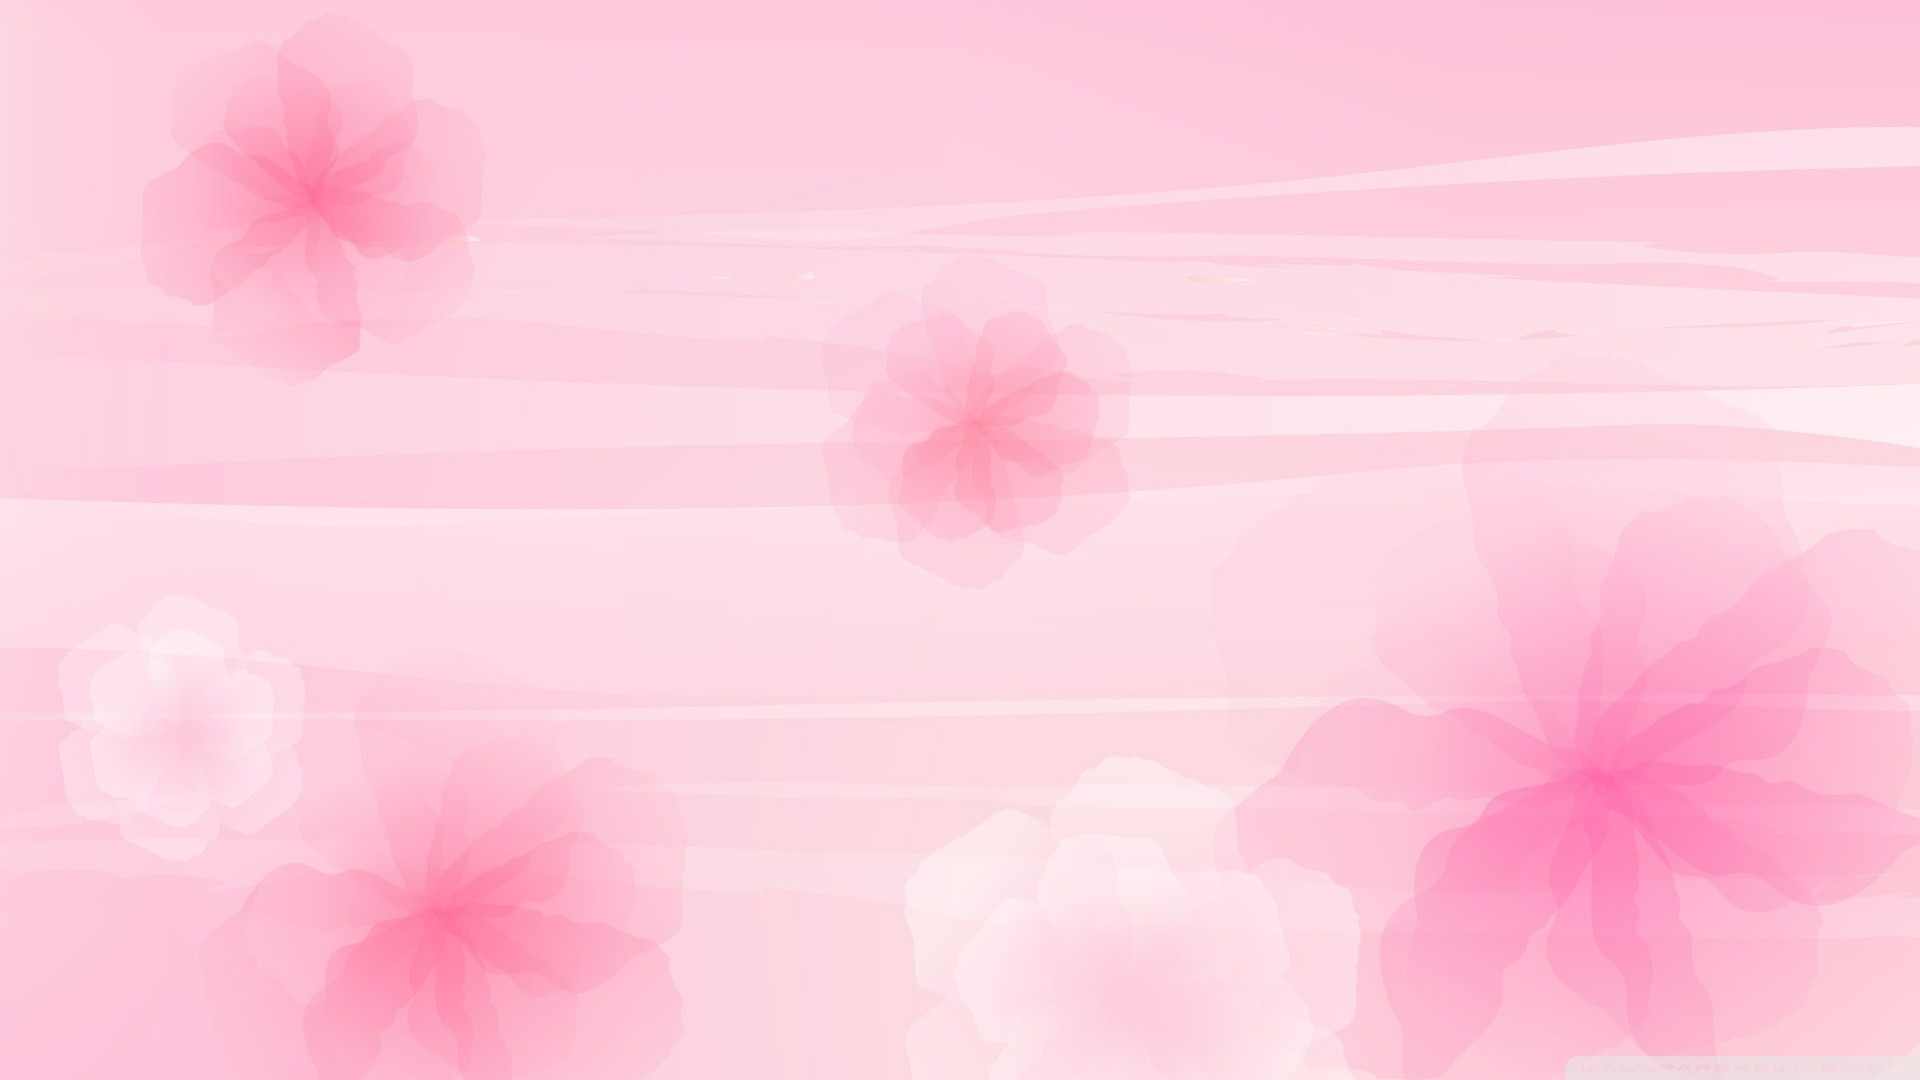 Soft Pink Wallpaper 183 ①